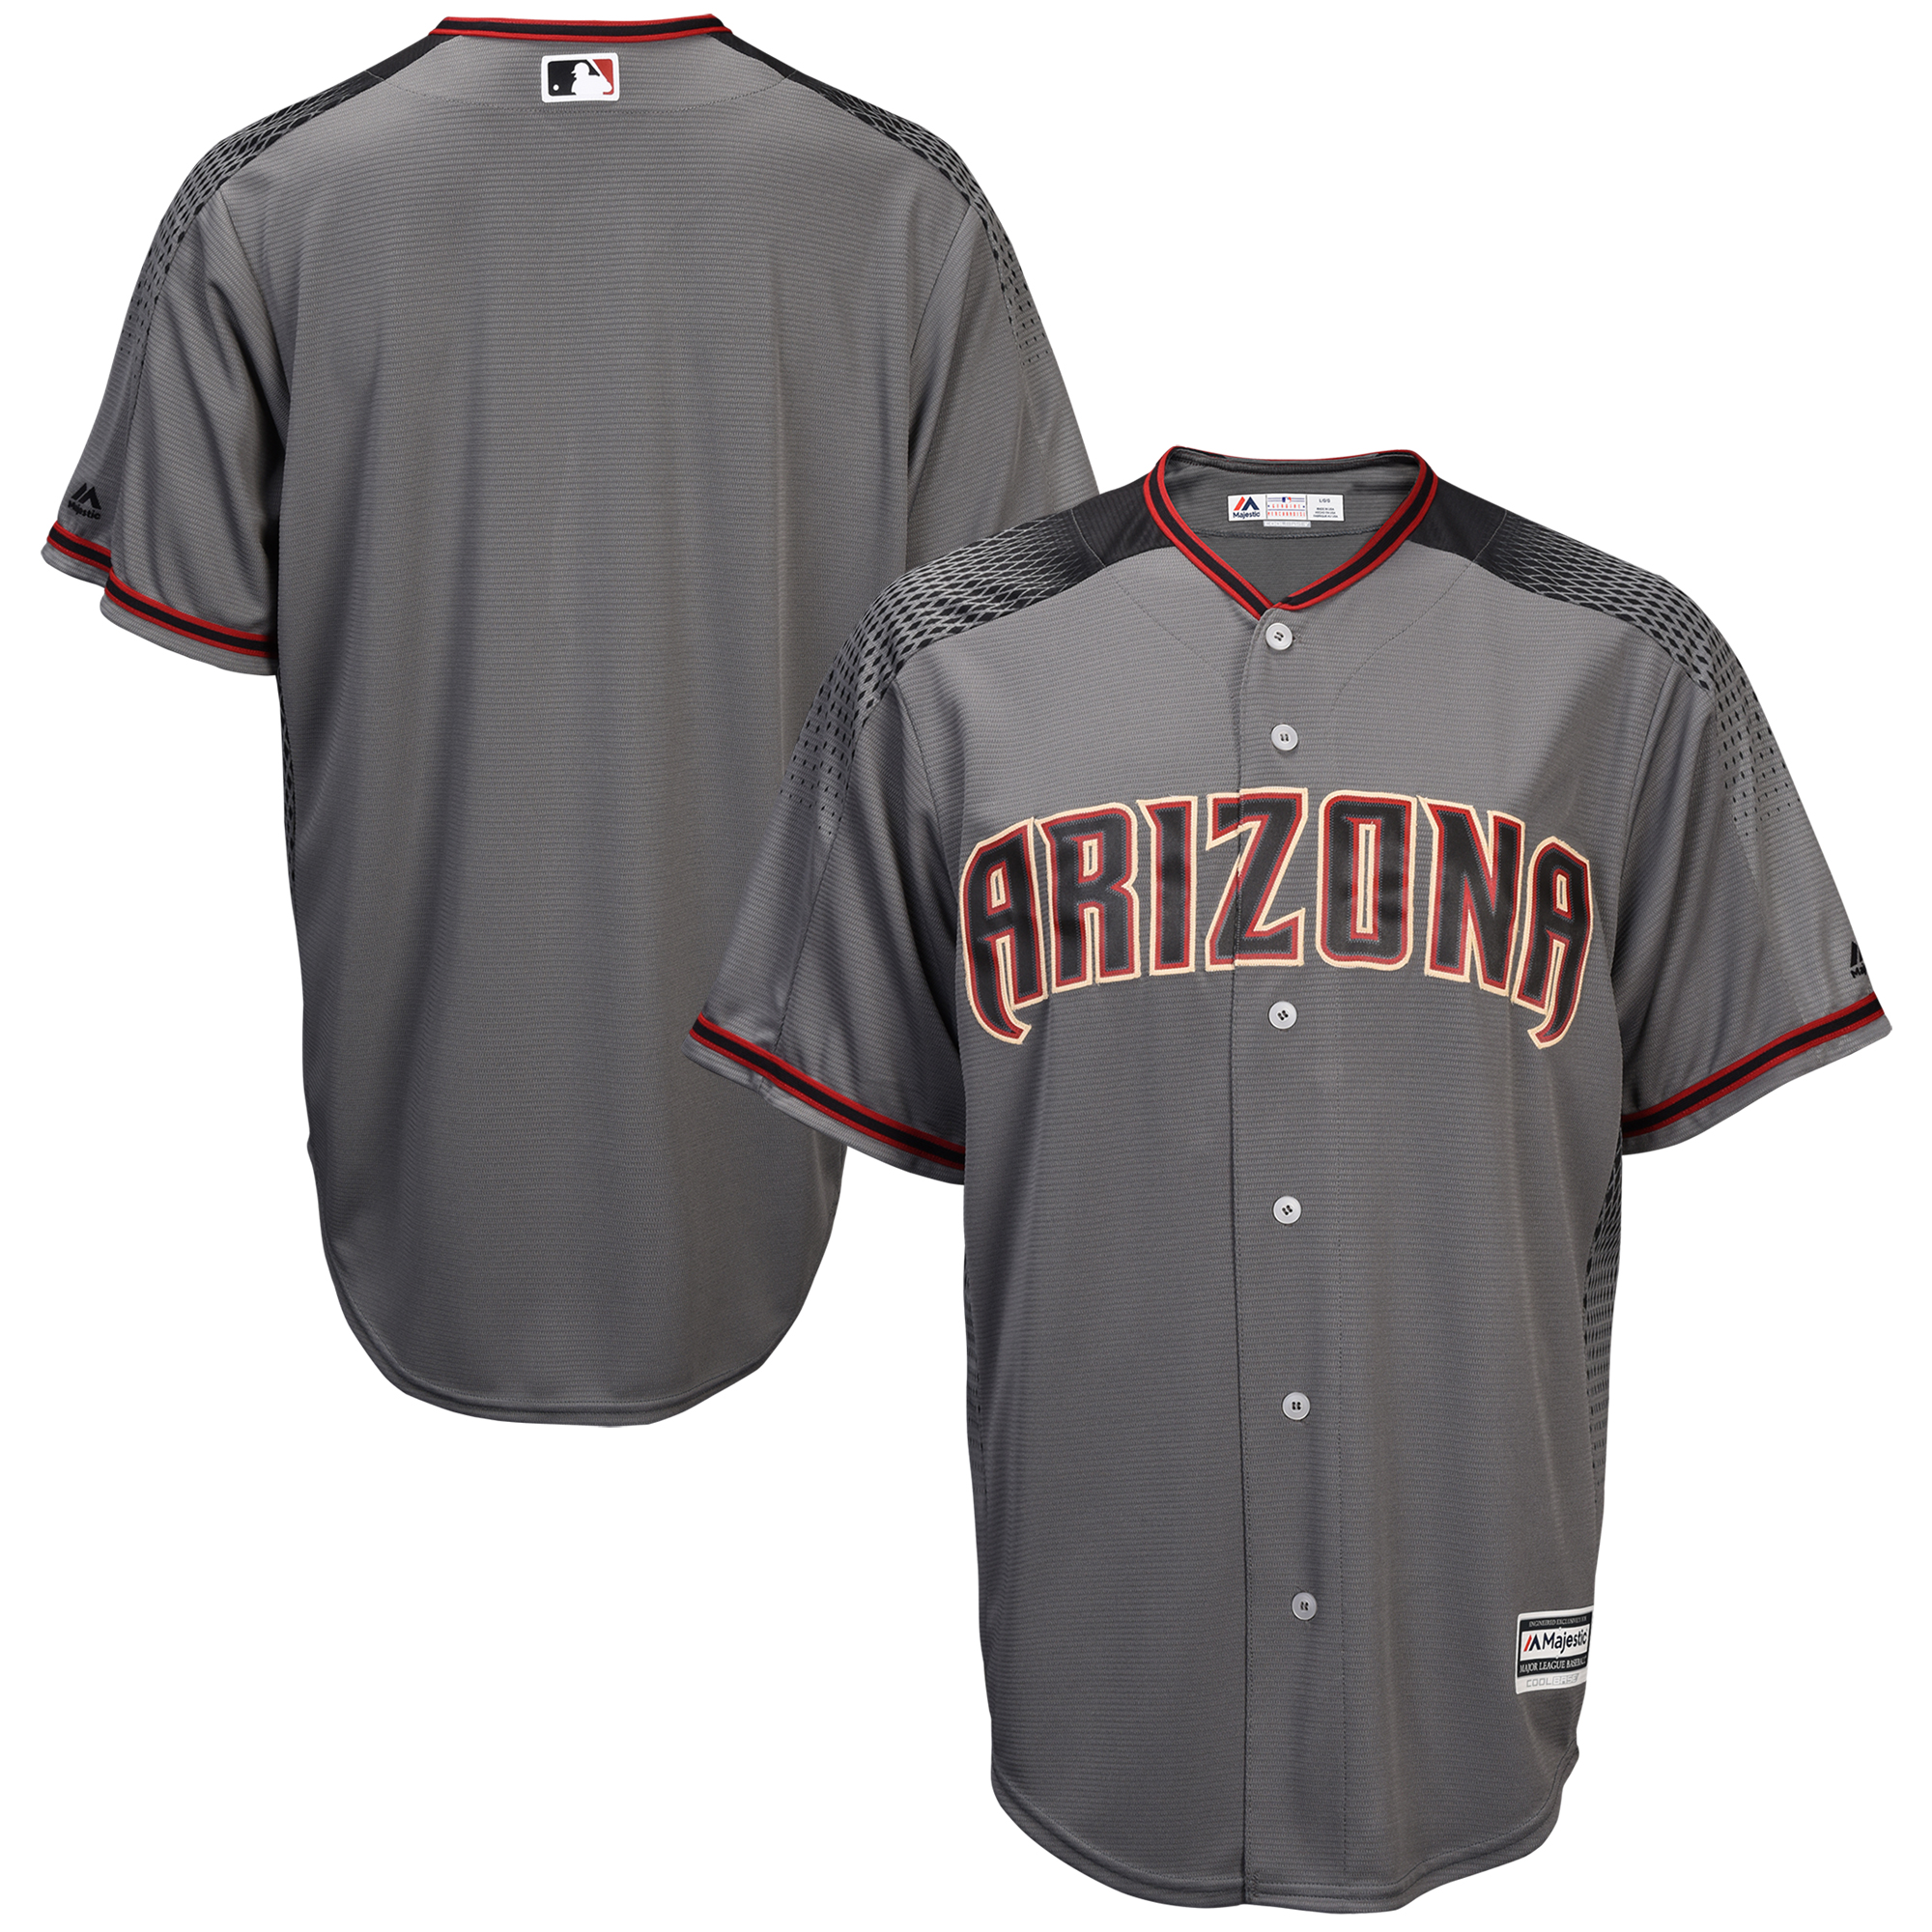 Arizona Diamondbacks Majestic Fashion Official Cool Base Replica Team Jersey - Gray/Black